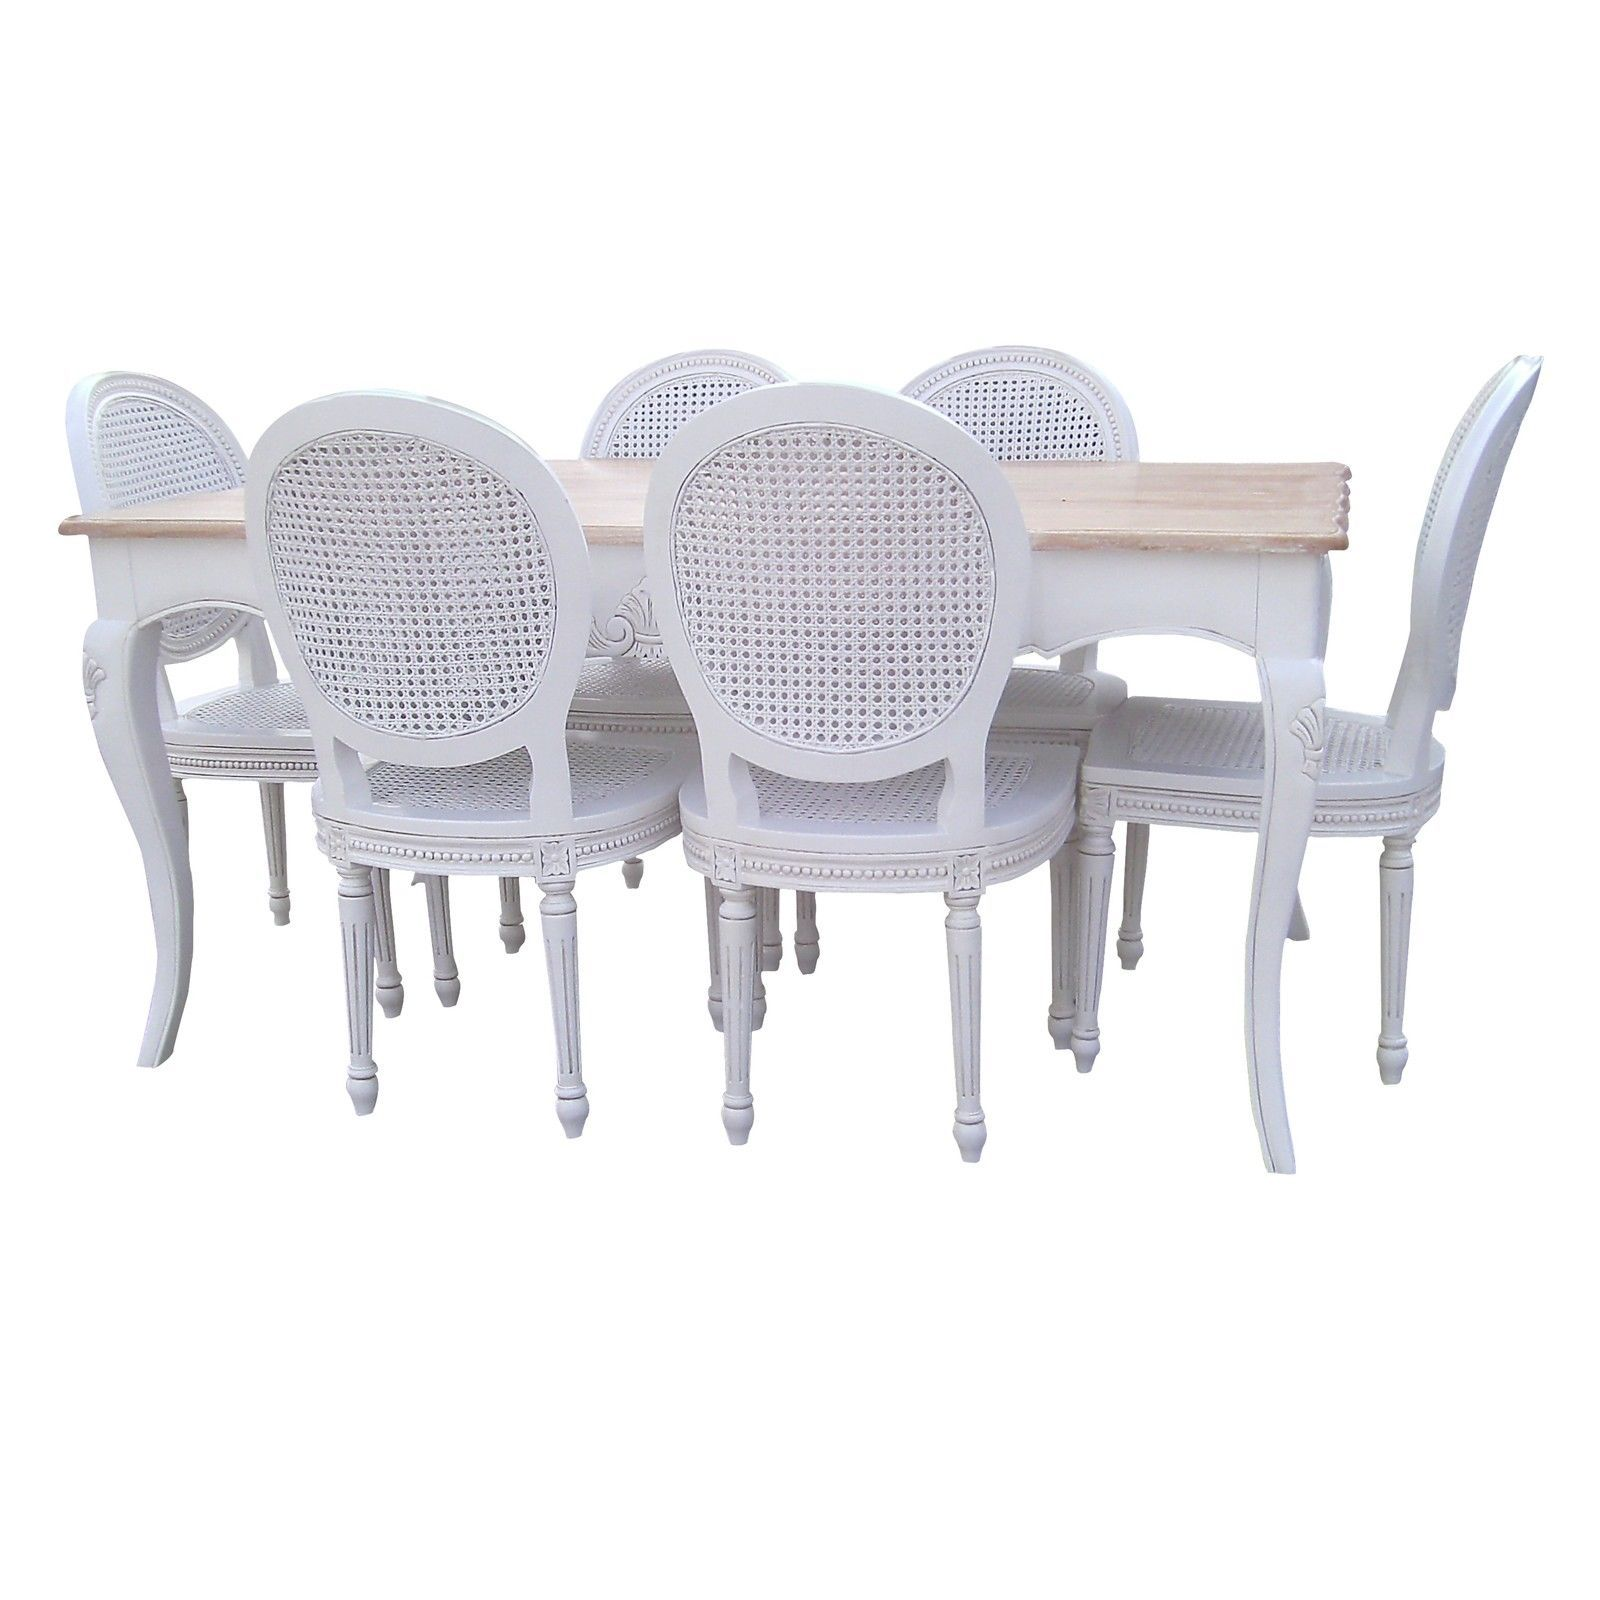 French Chateau White Mahogany Dining Table With Natural White Wash Cool White Dining Room Table And 6 Chairs Decorating Design